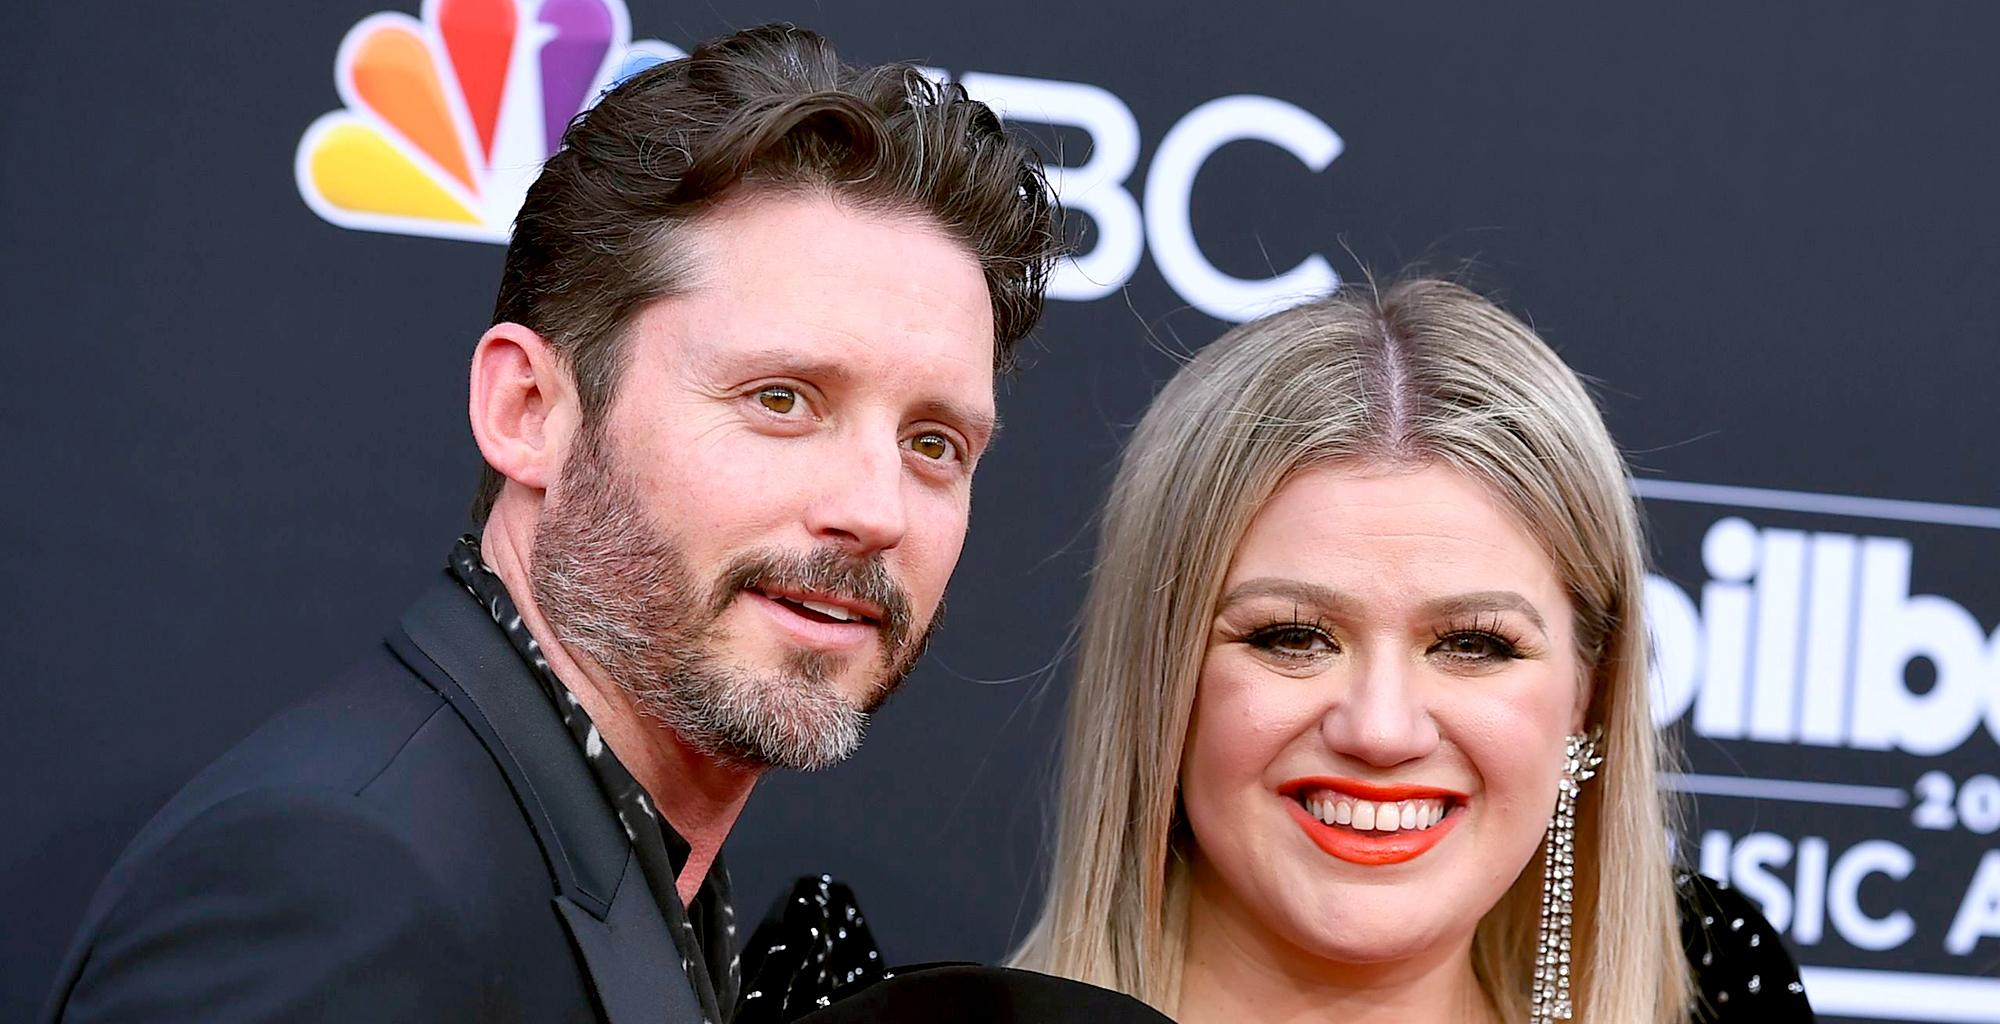 Kelly Clarkson's Marriage May Have Crumbled Due To Quarantine And Her Talk Show